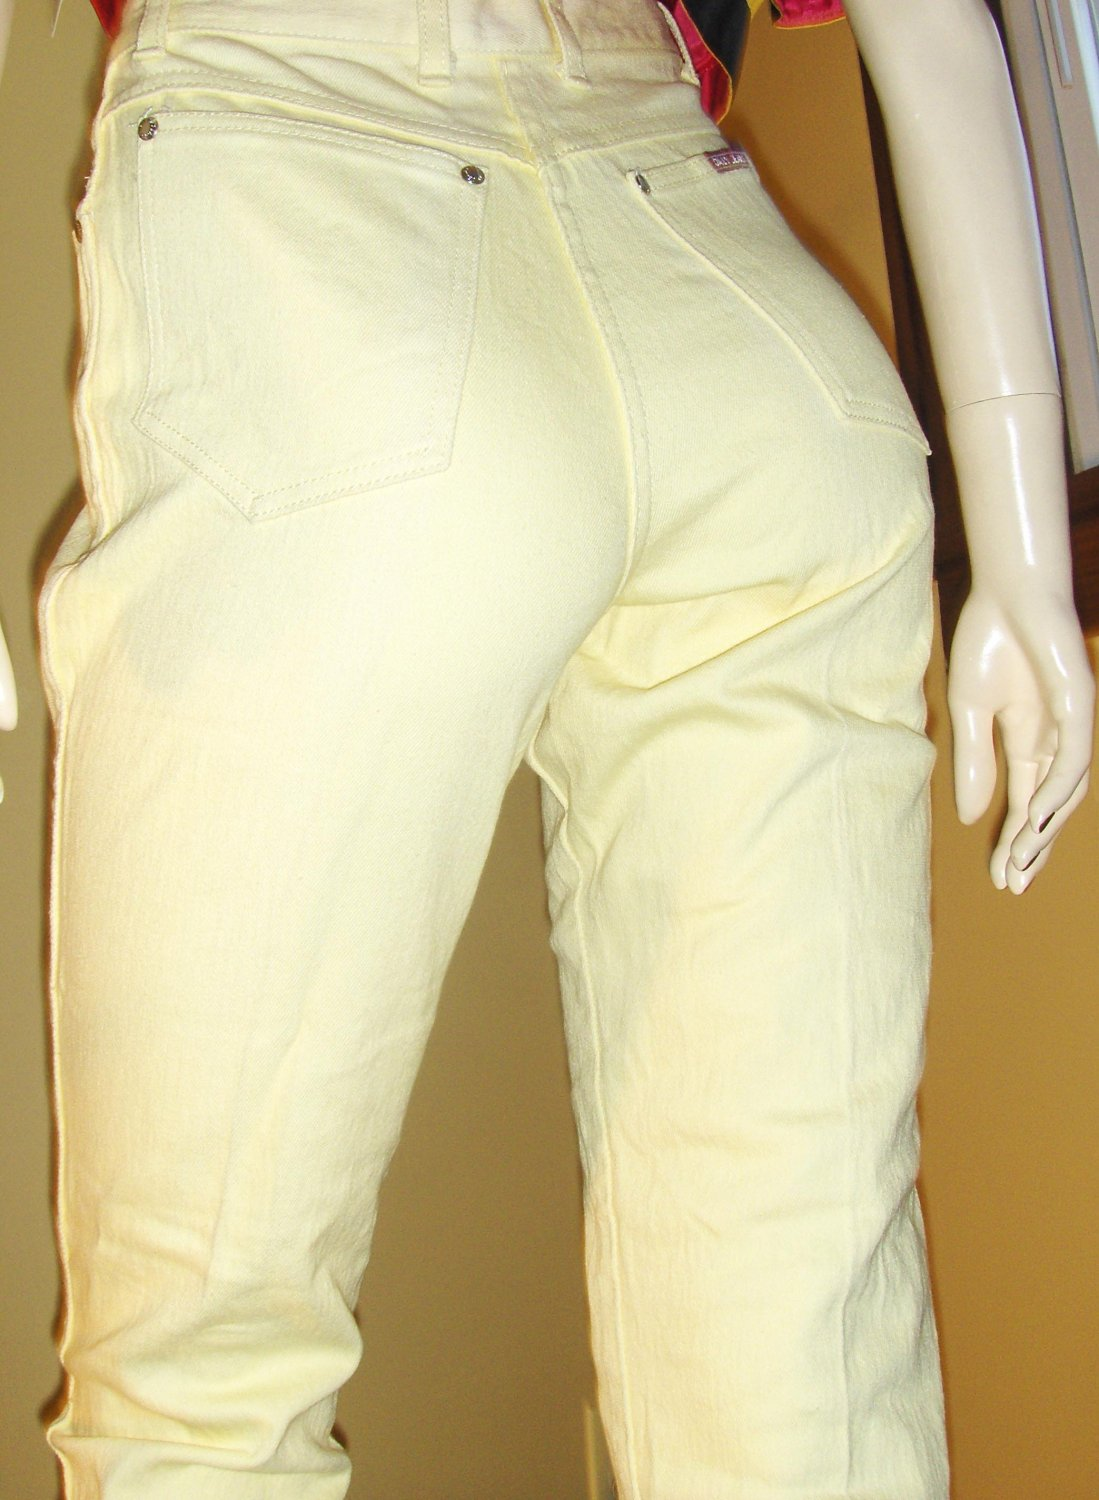 Vintage 80s Hipster High Waisted Skinny Denim DISCO Jeans mellow yellow S/M